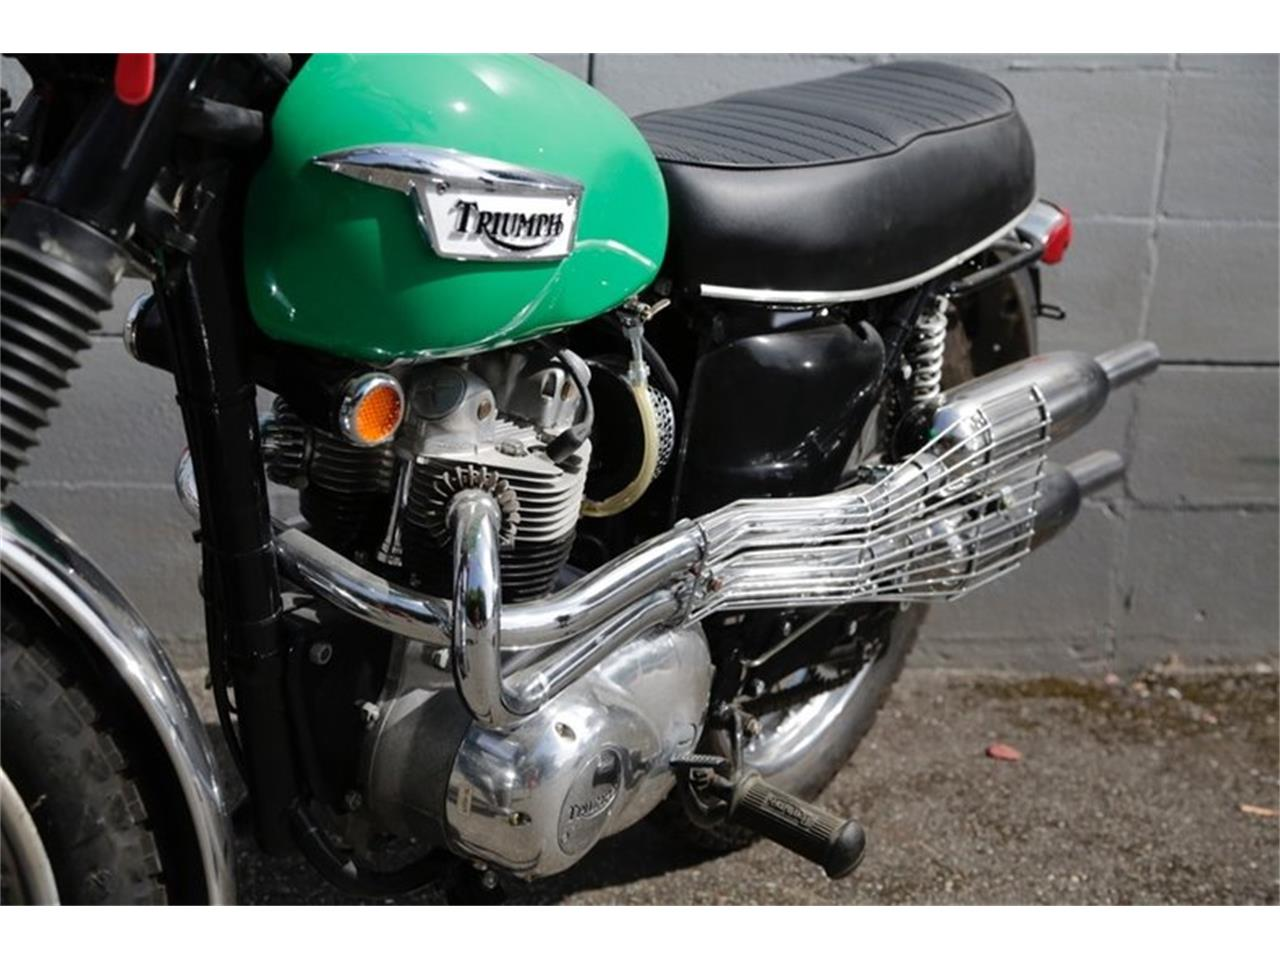 Large Picture of Classic 1969 Triumph Motorcycle located in Washington - $15,000.00 Offered by Drager's Classics - NPR4